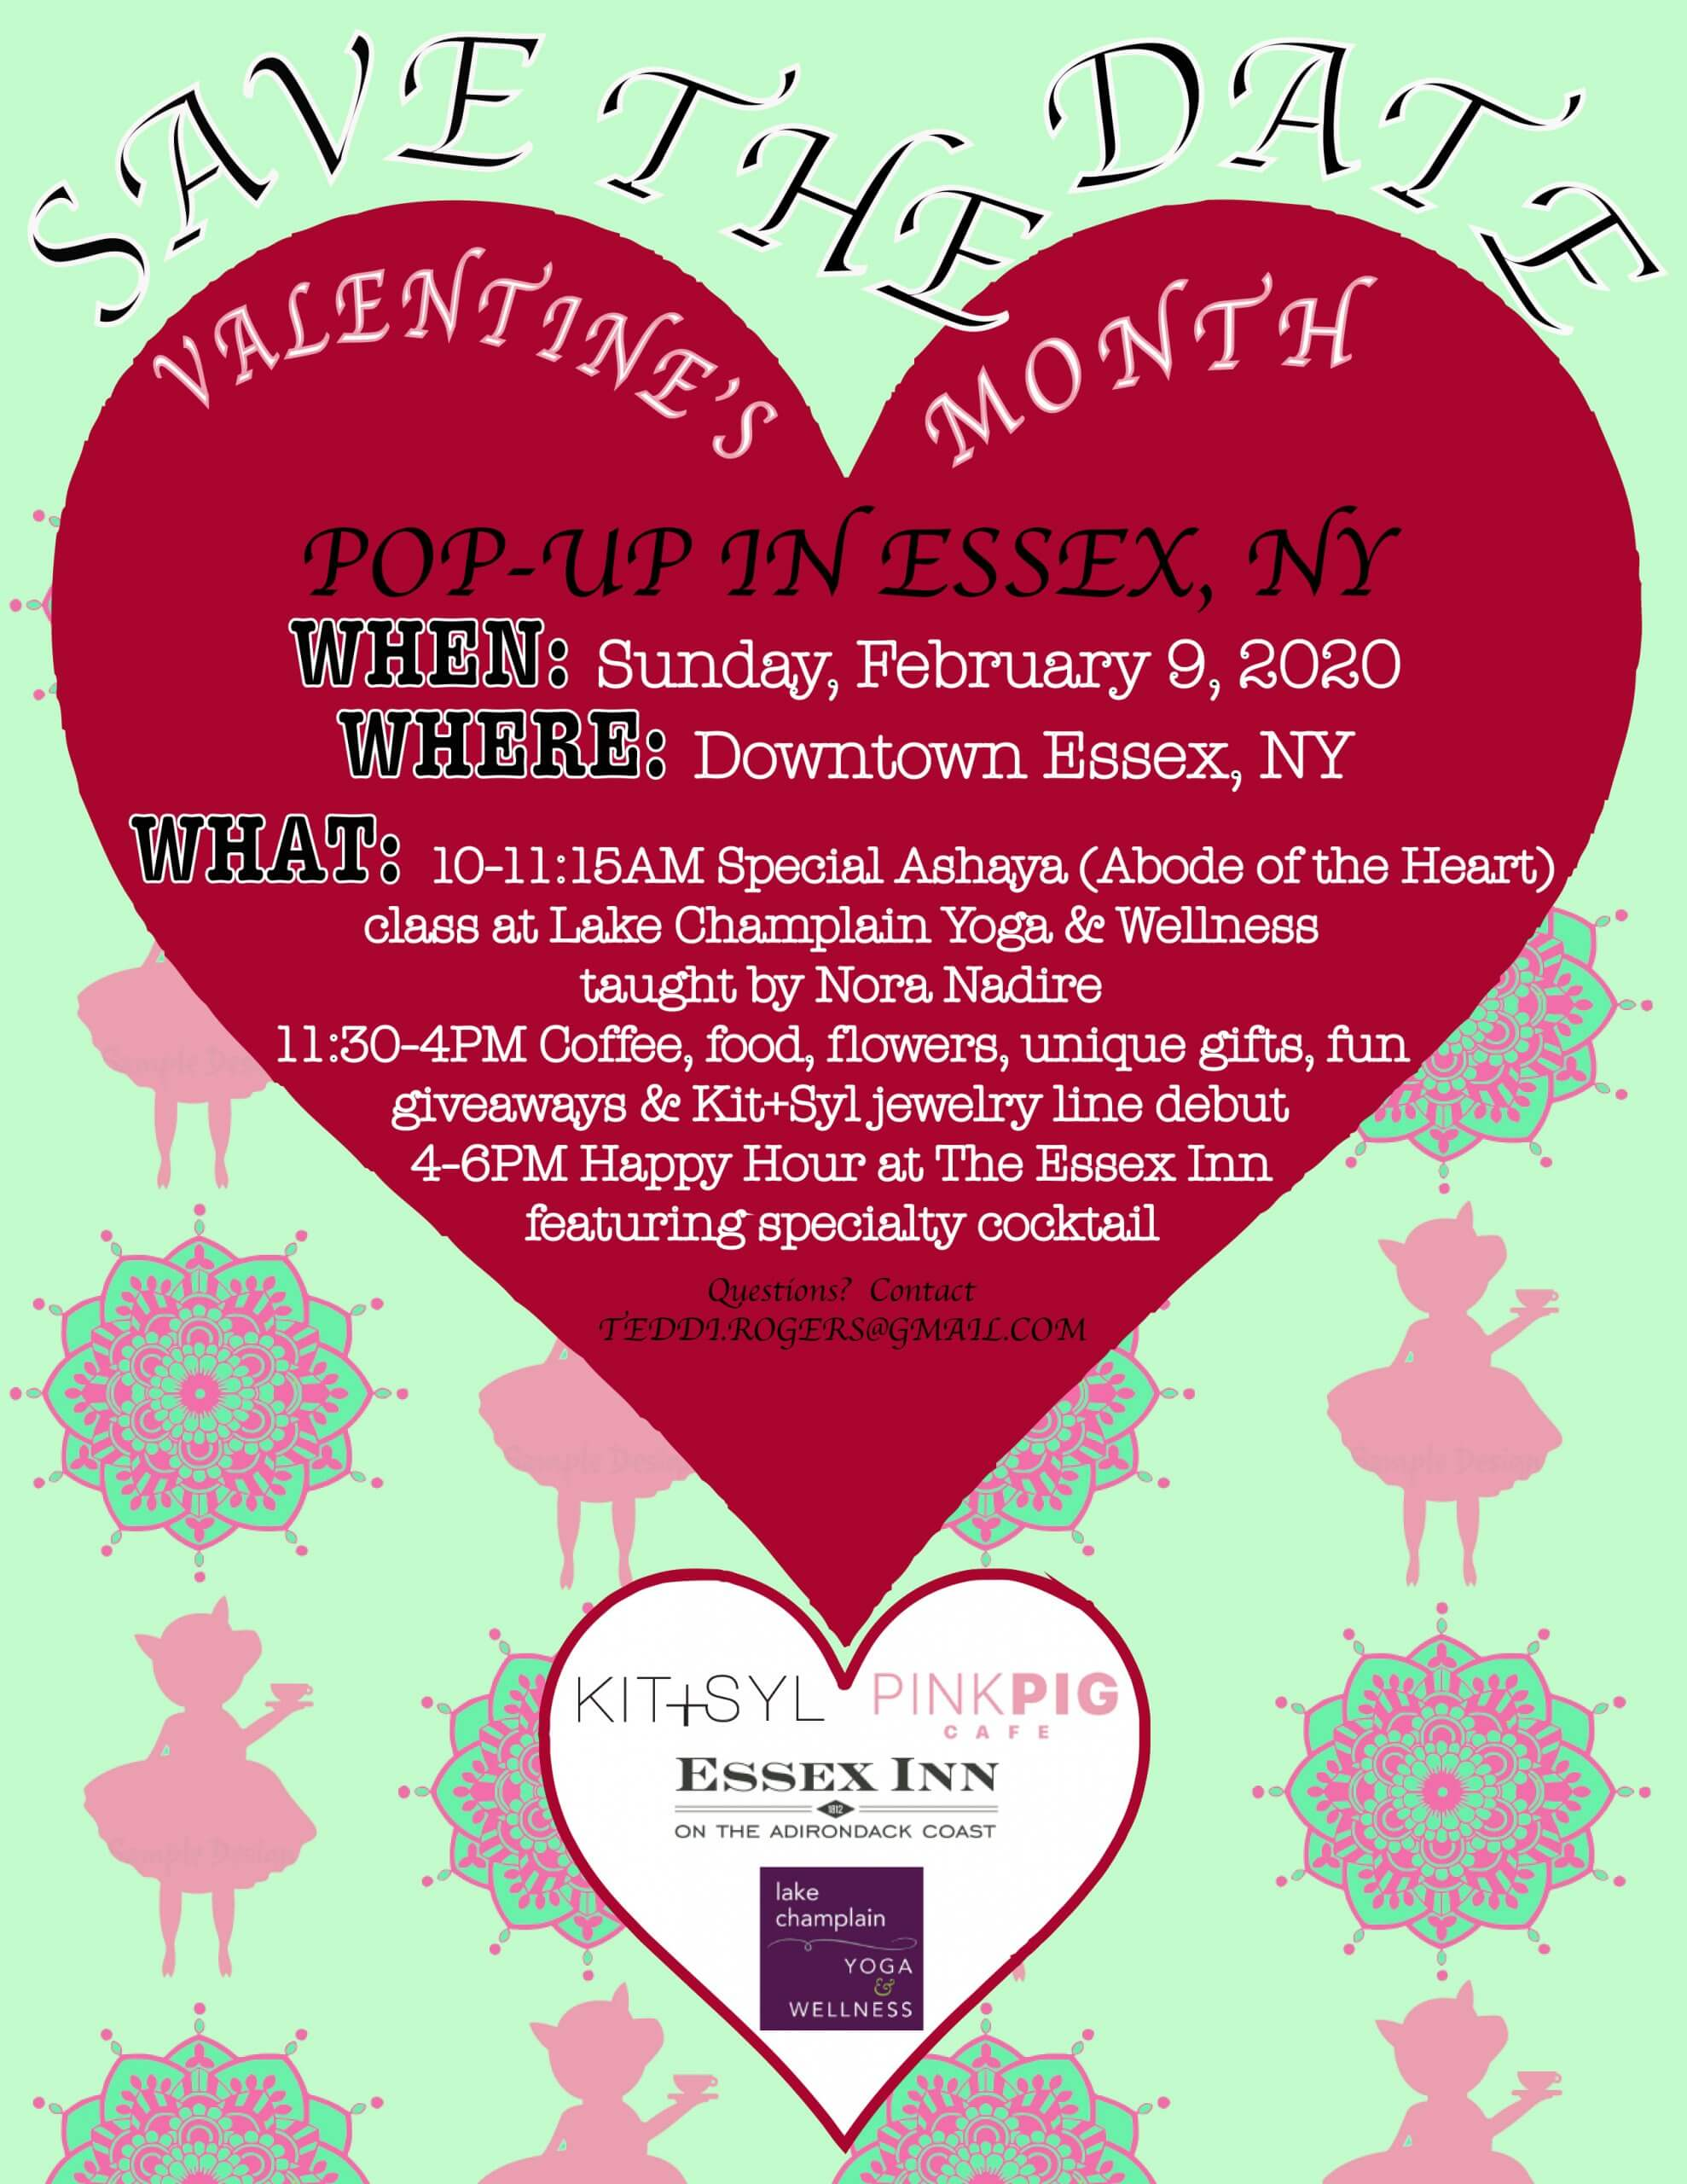 Valentine's Day Activities in Essex on February 9